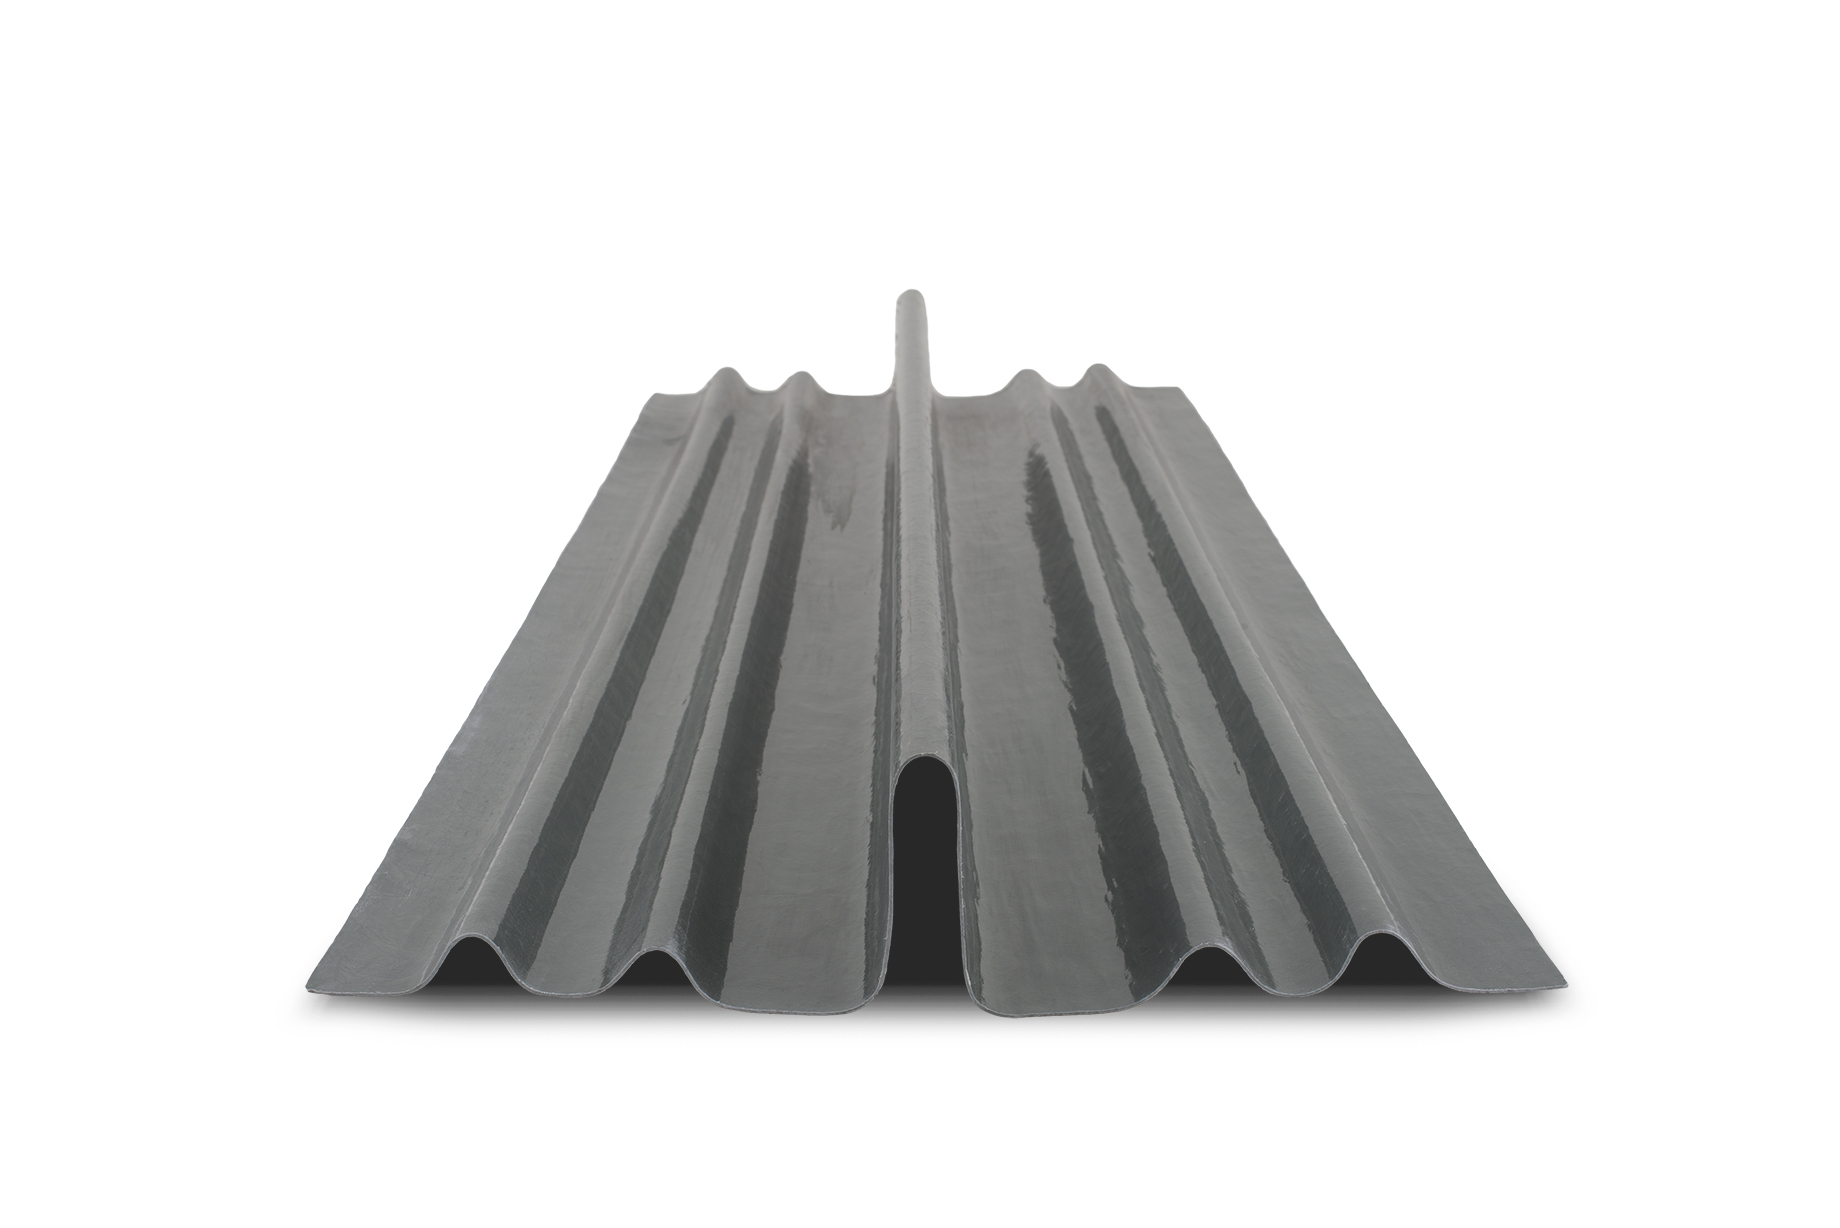 Stand alone photo of the GRP Dry Fix Valley Trough for Low Profiled and Plain Tiles